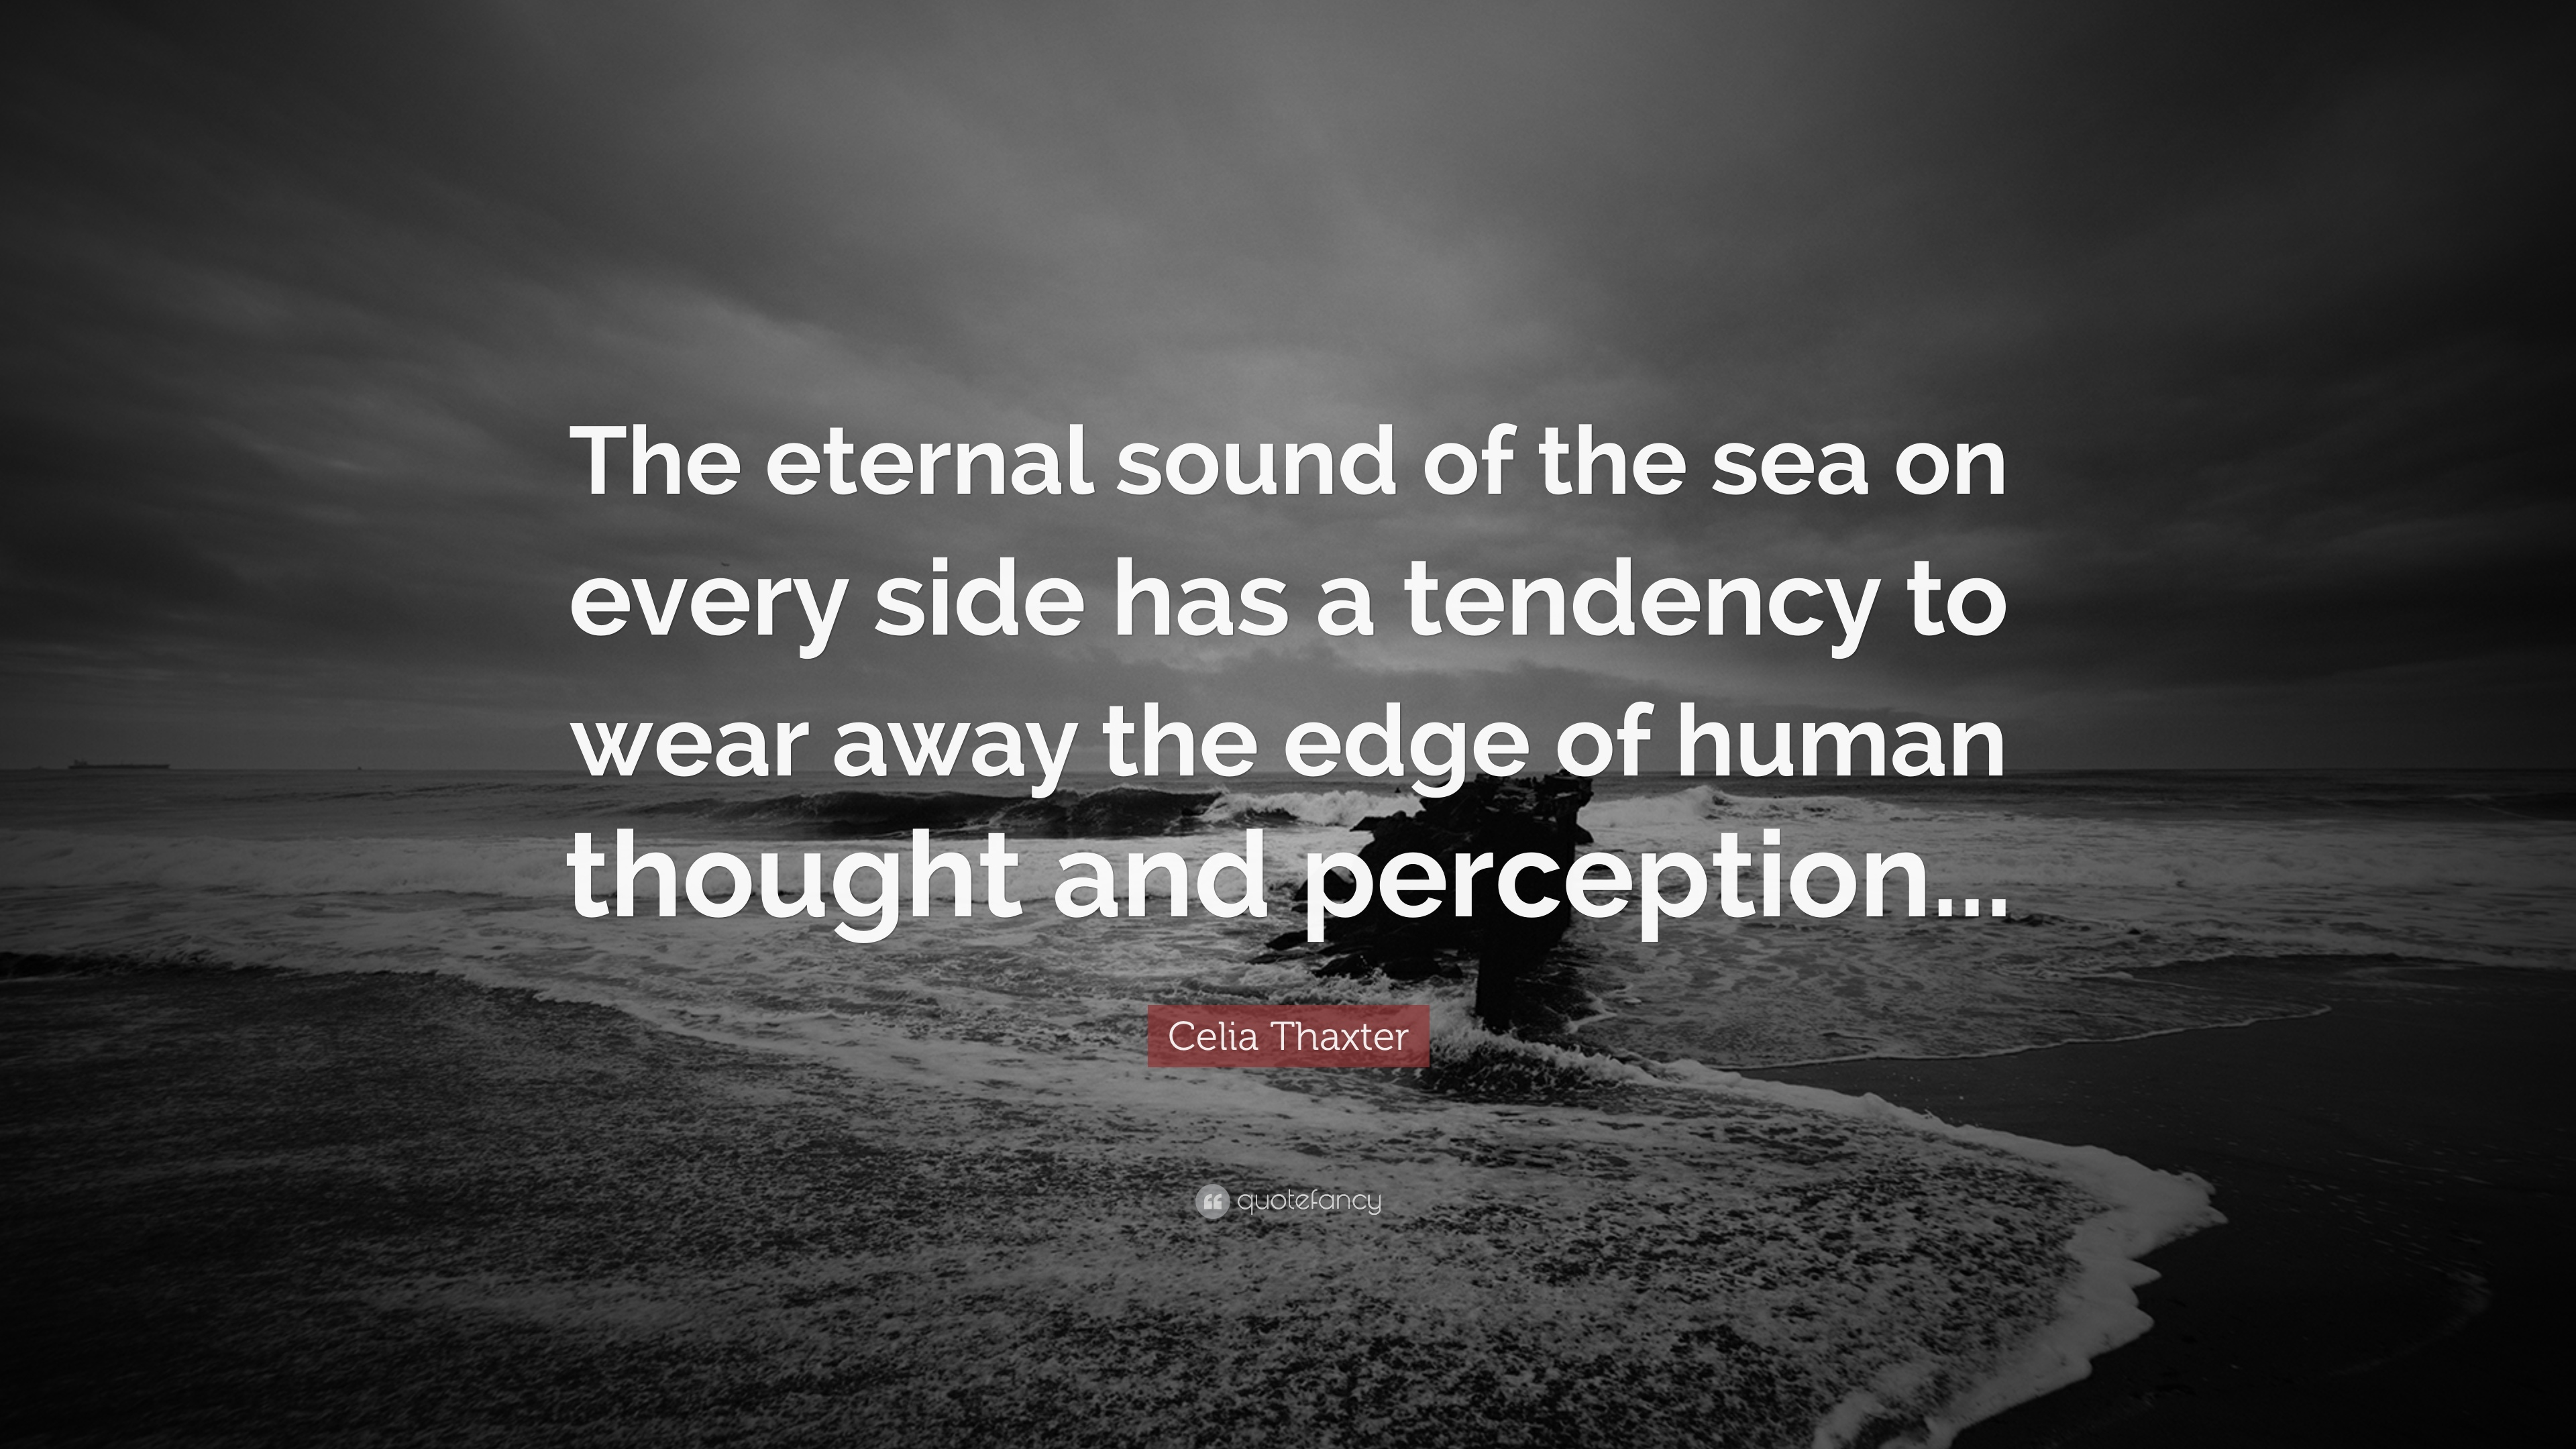 Celia Thaxter Quote: U201cThe Eternal Sound Of The Sea On Every Side Has A